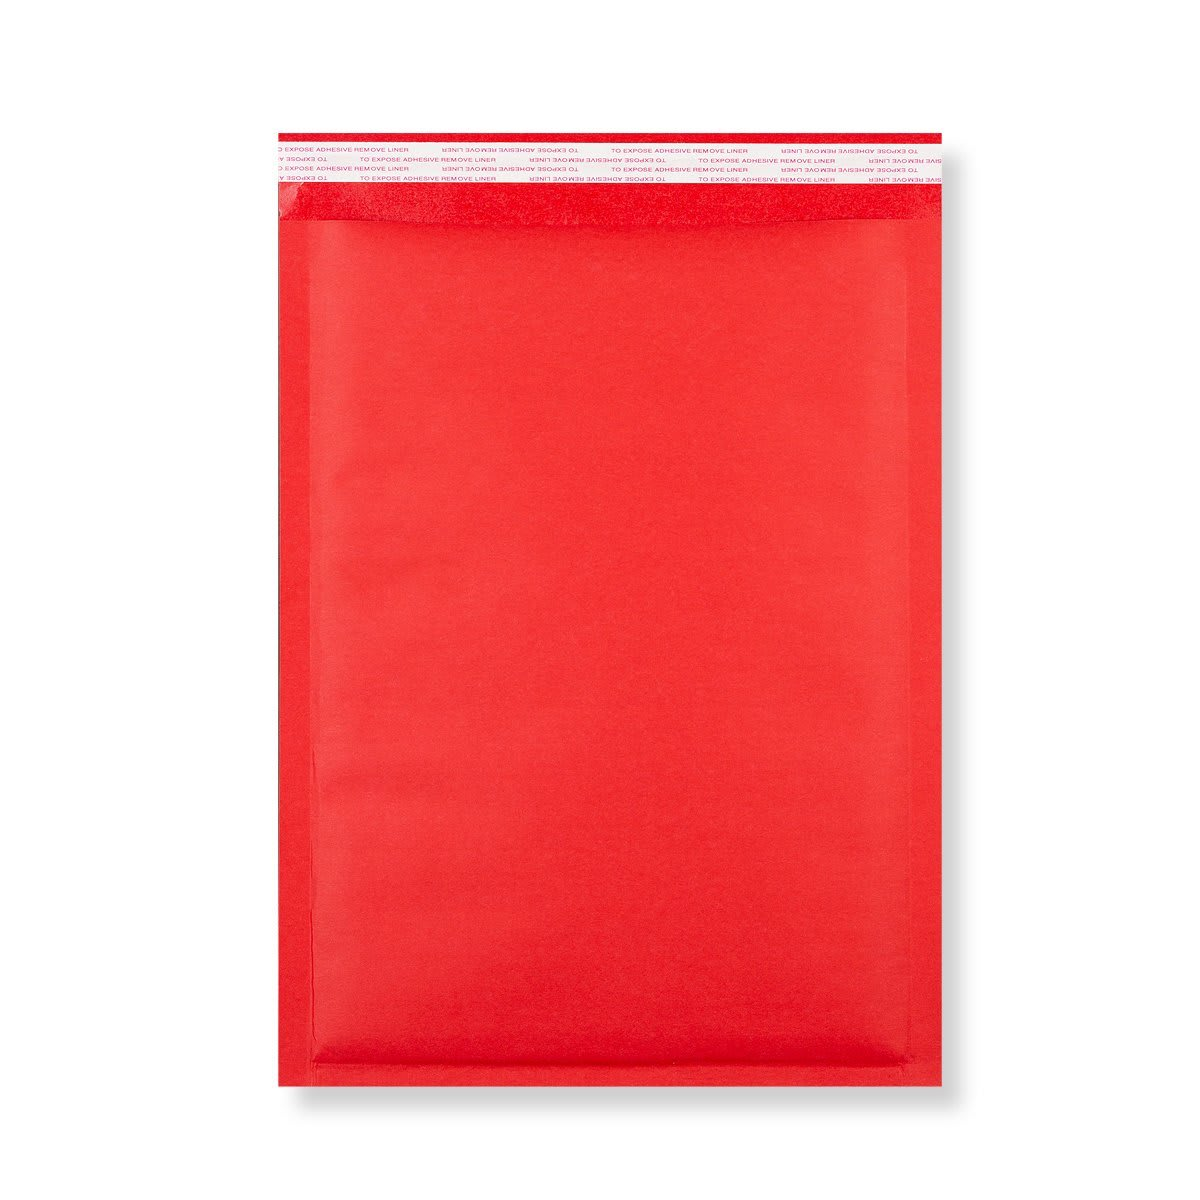 C3 RED PADDED BUBBLE ENVELOPES (450 x 320MM)